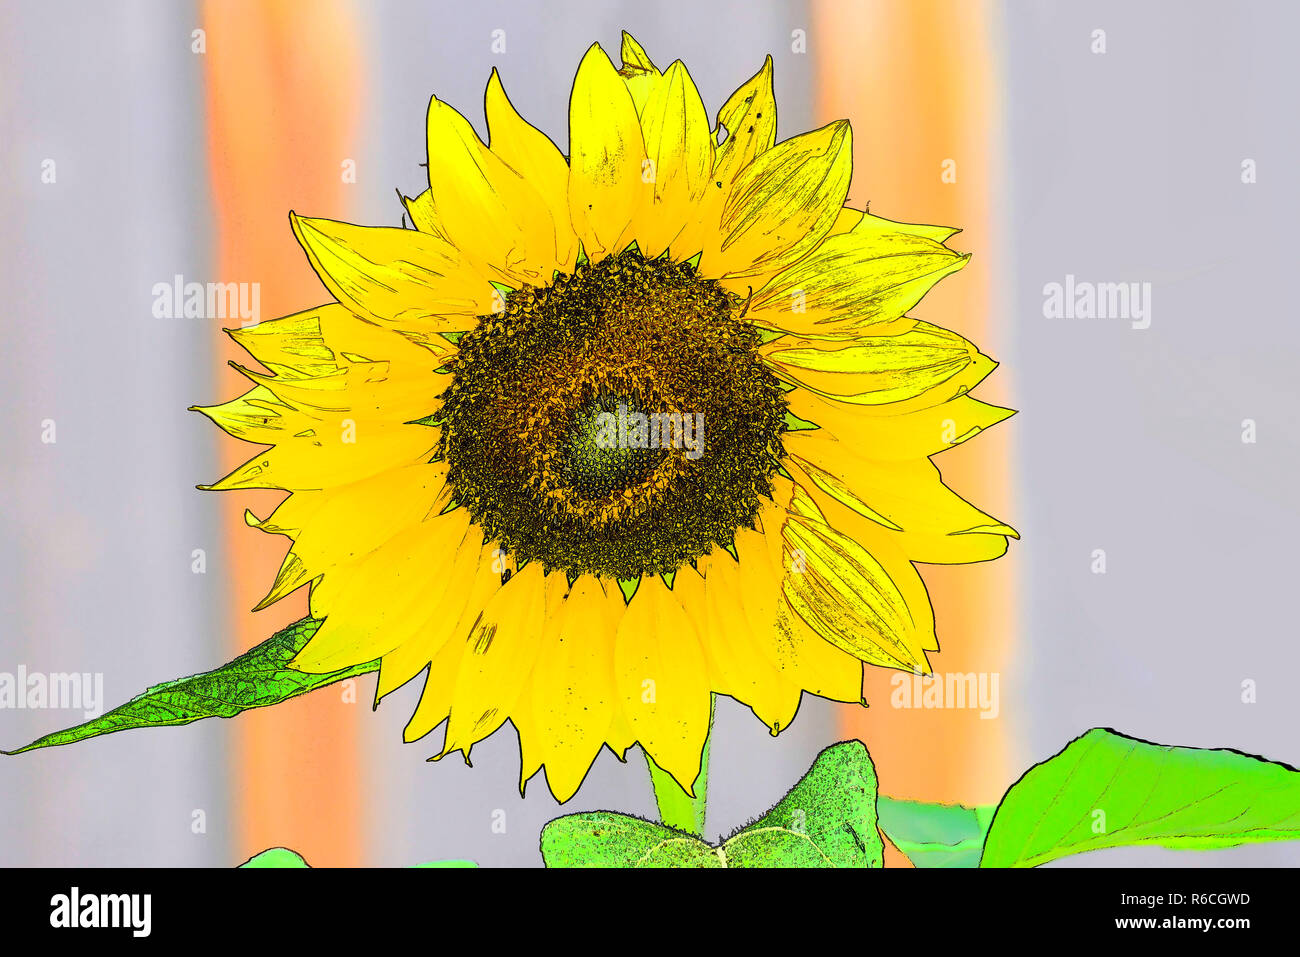 Sunflower In Colored Pencil Drawing Stock Photo Alamy